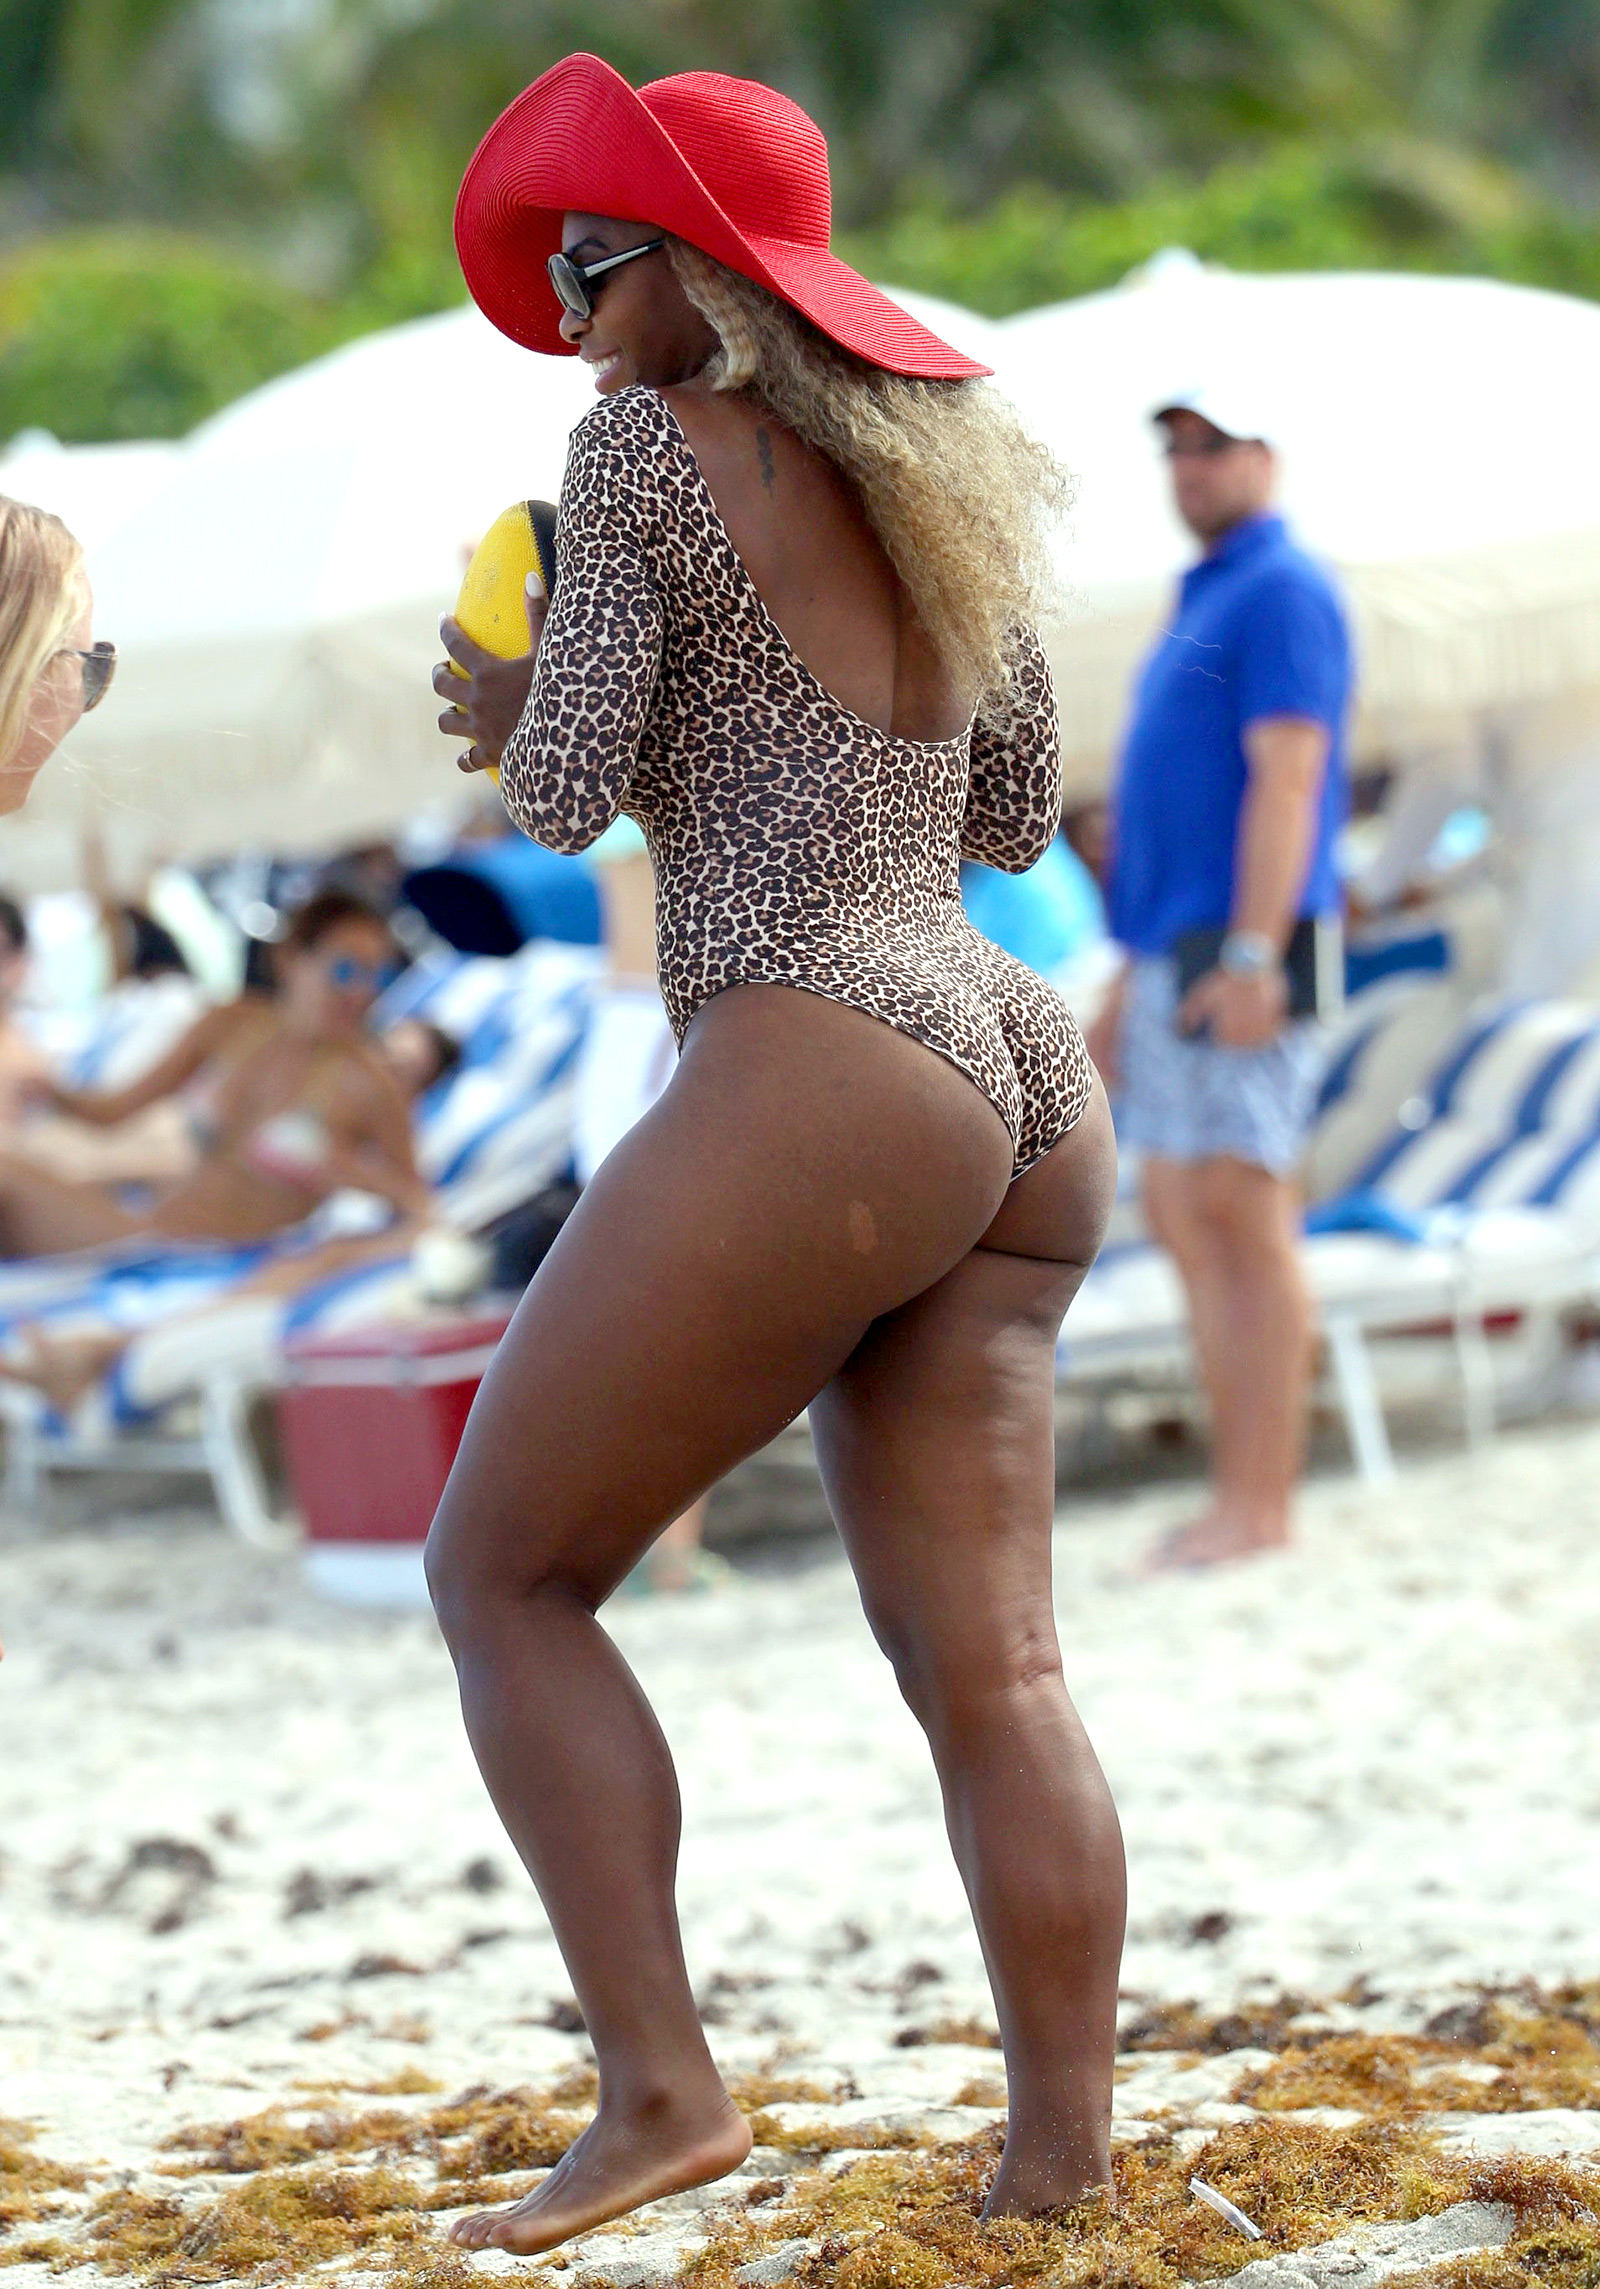 Over booty serena williams bent